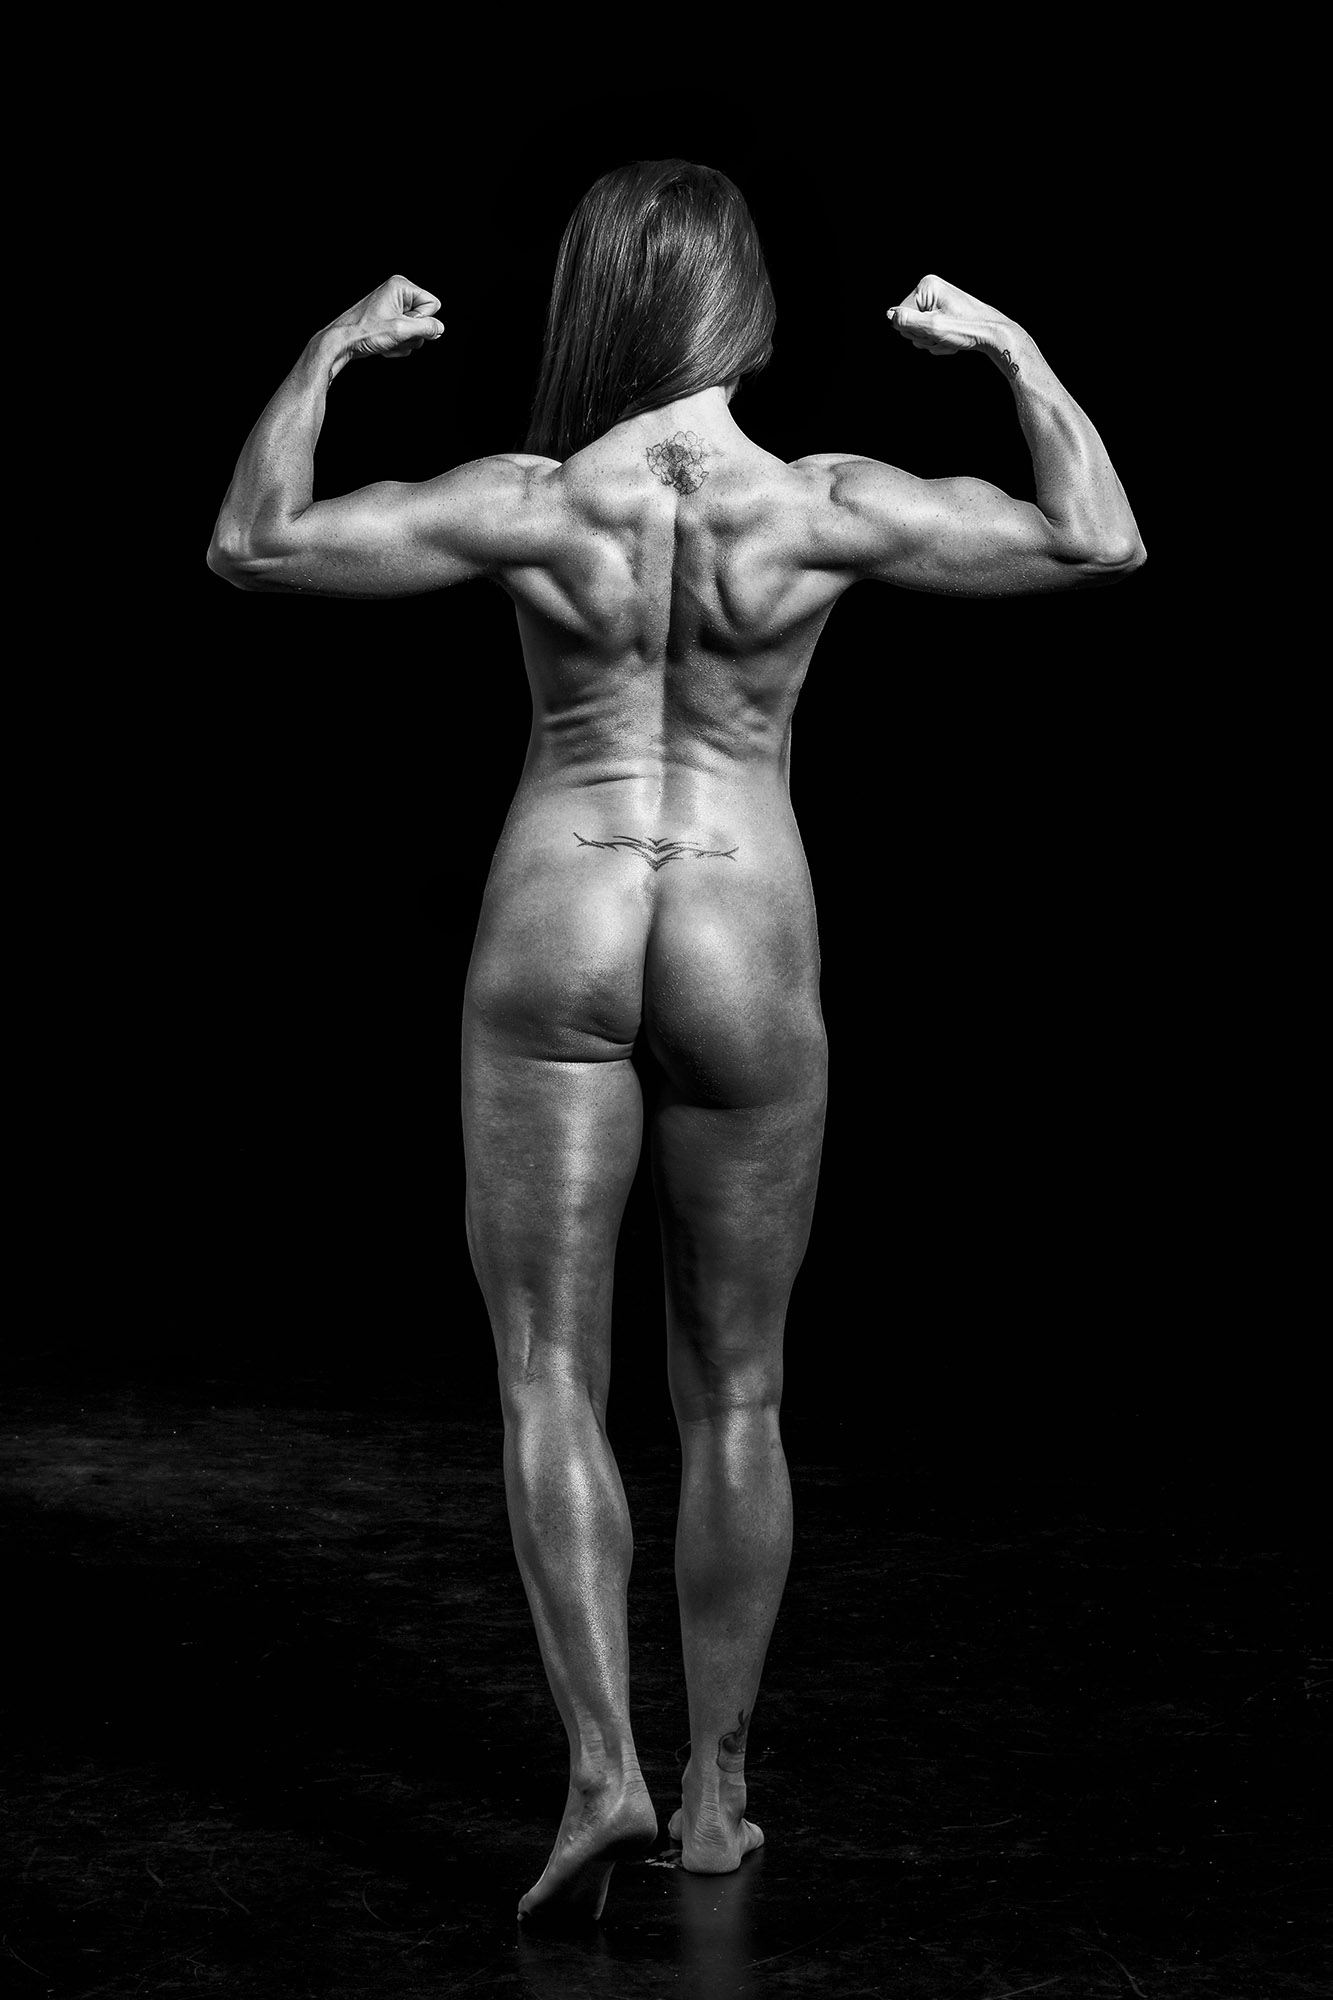 The rear double biceps pose shows off the back nicely.